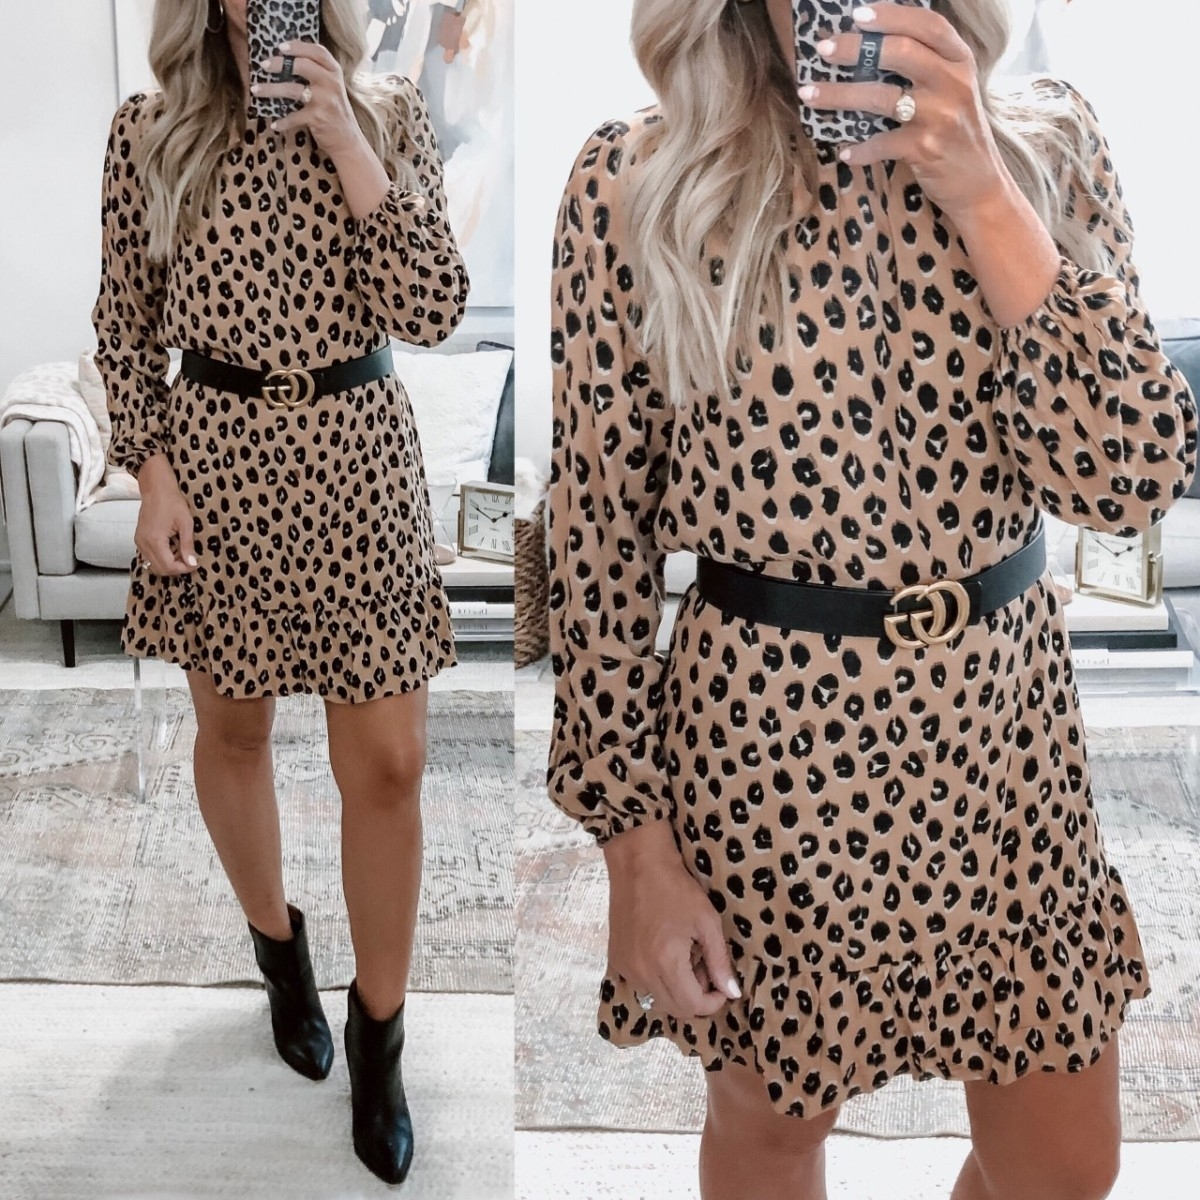 leopard dress | 18 Cute Fall Dresses Under $100 by popular Houston fashion blog, Haute and Humid: image of a woman wearing a Target A New Day Women's Animal Print Long Sleeve Round Neck Mini Crepe Dress.